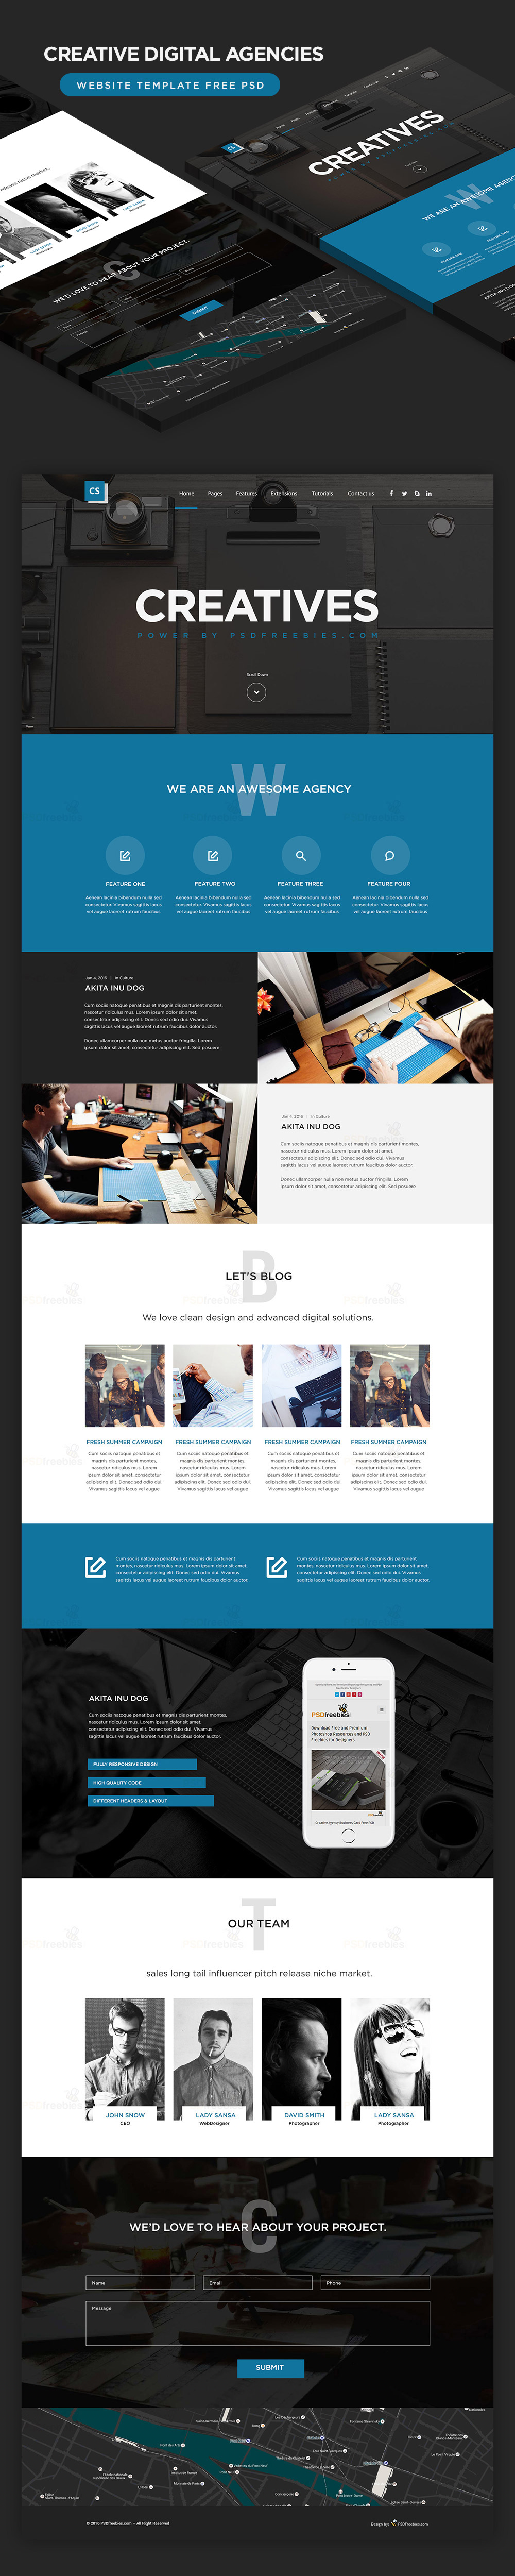 Creative digital agencies website template free psd free psd creative digital agencies website template free psd accmission Gallery